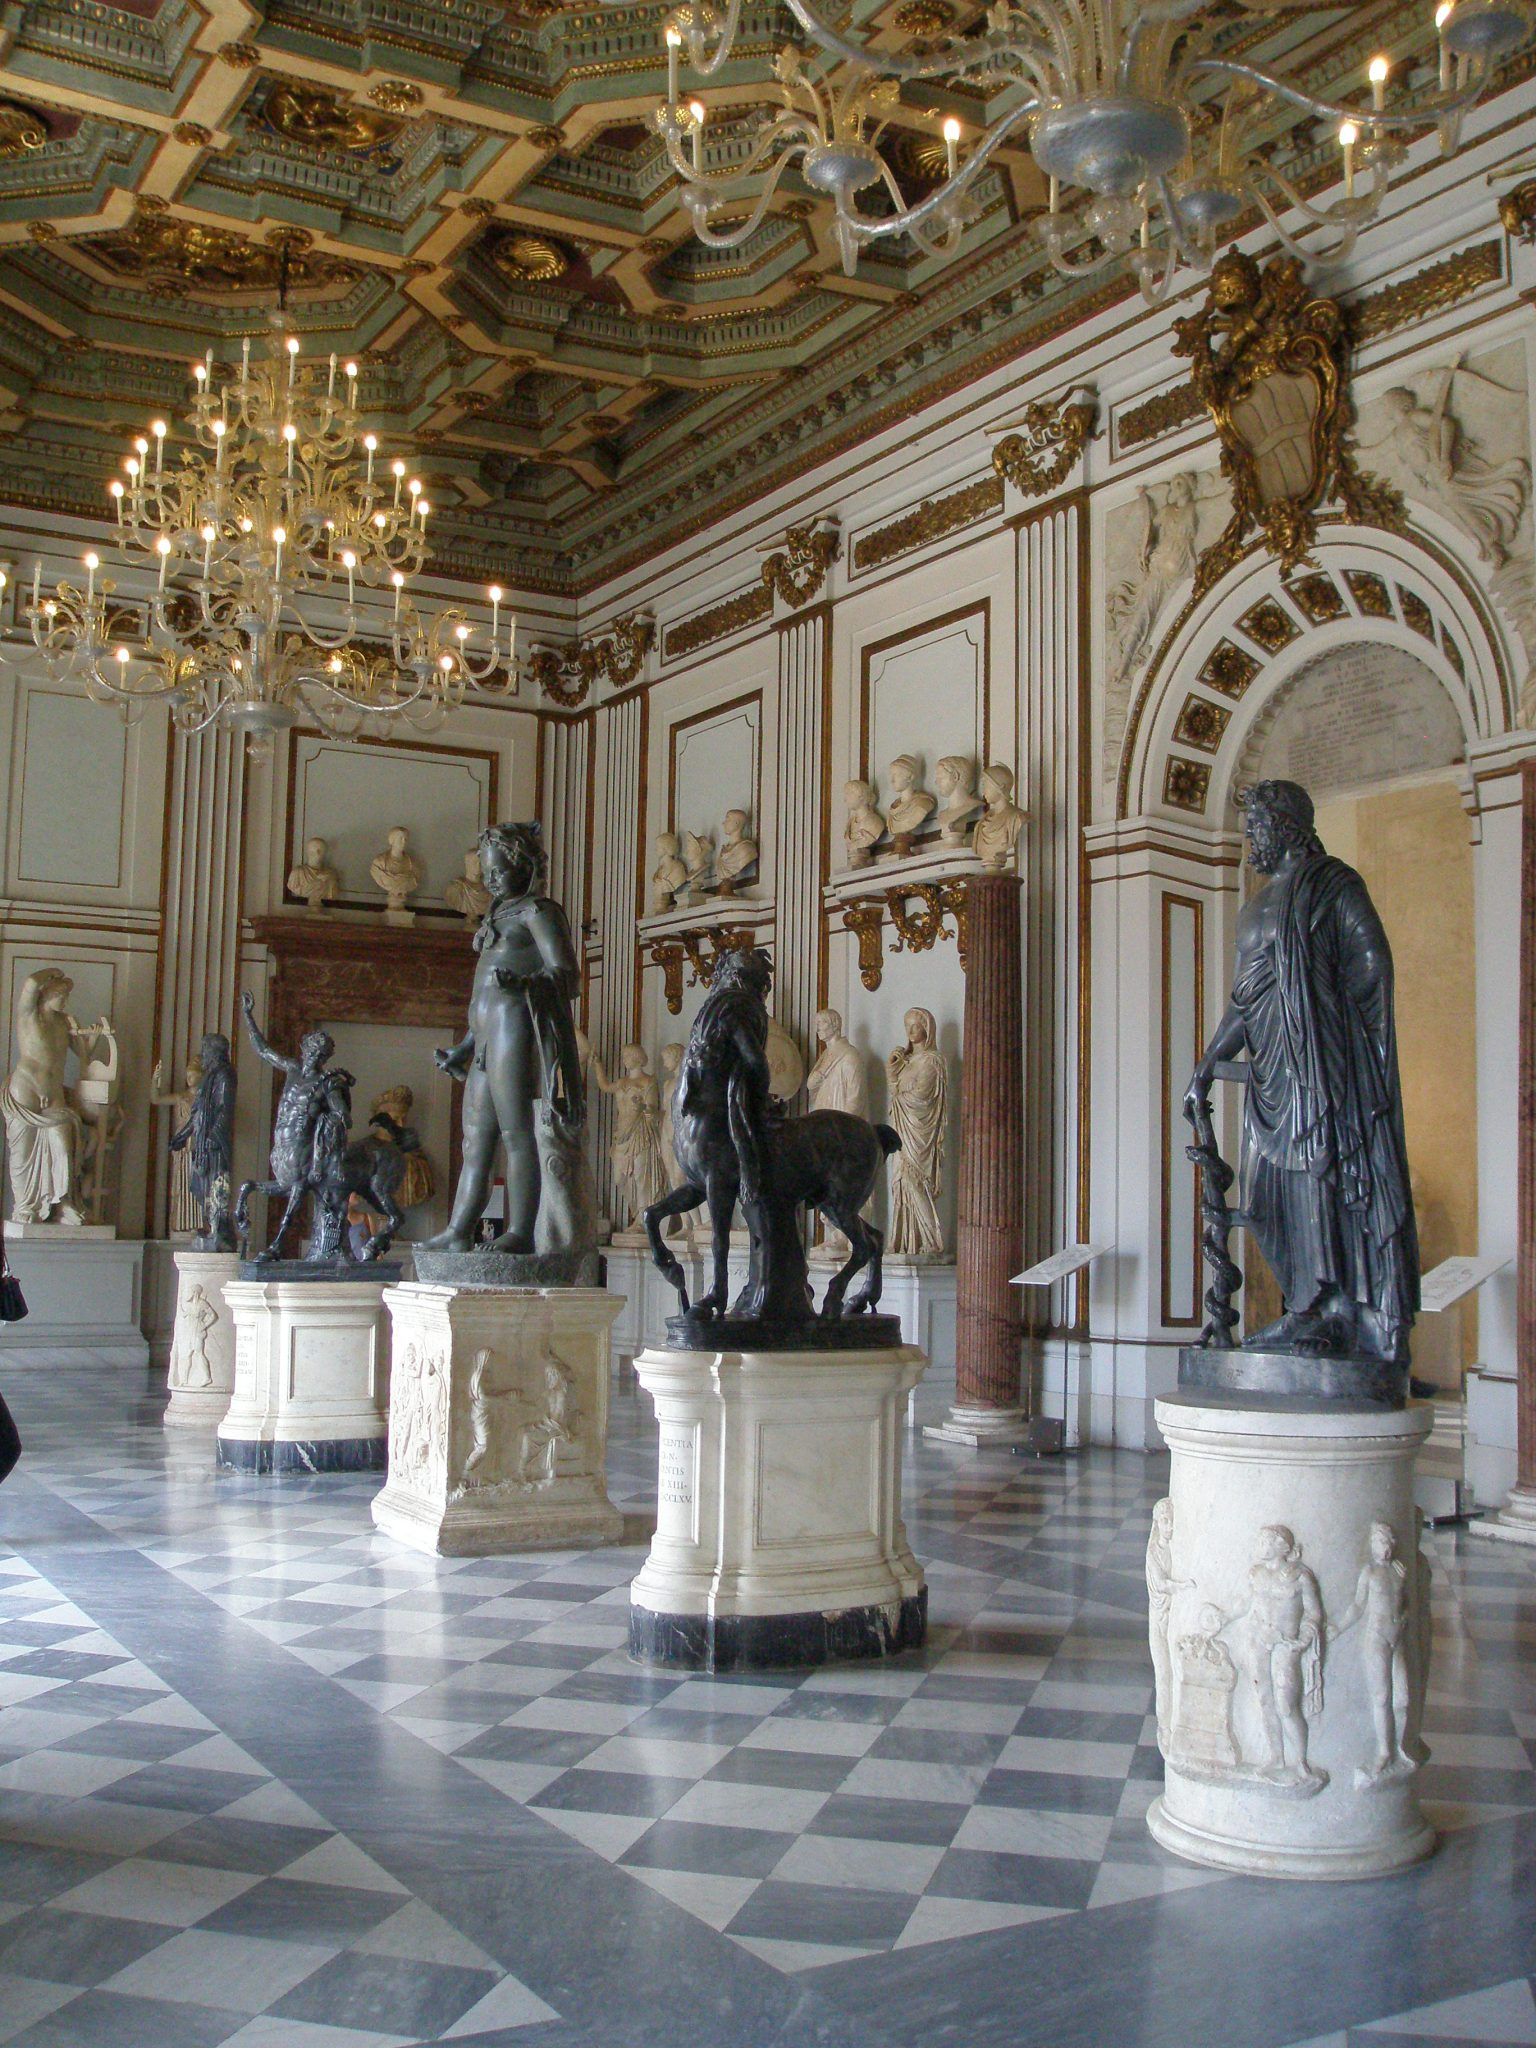 Baroque splendor in the Great Hall of the Palazzo Nuovo